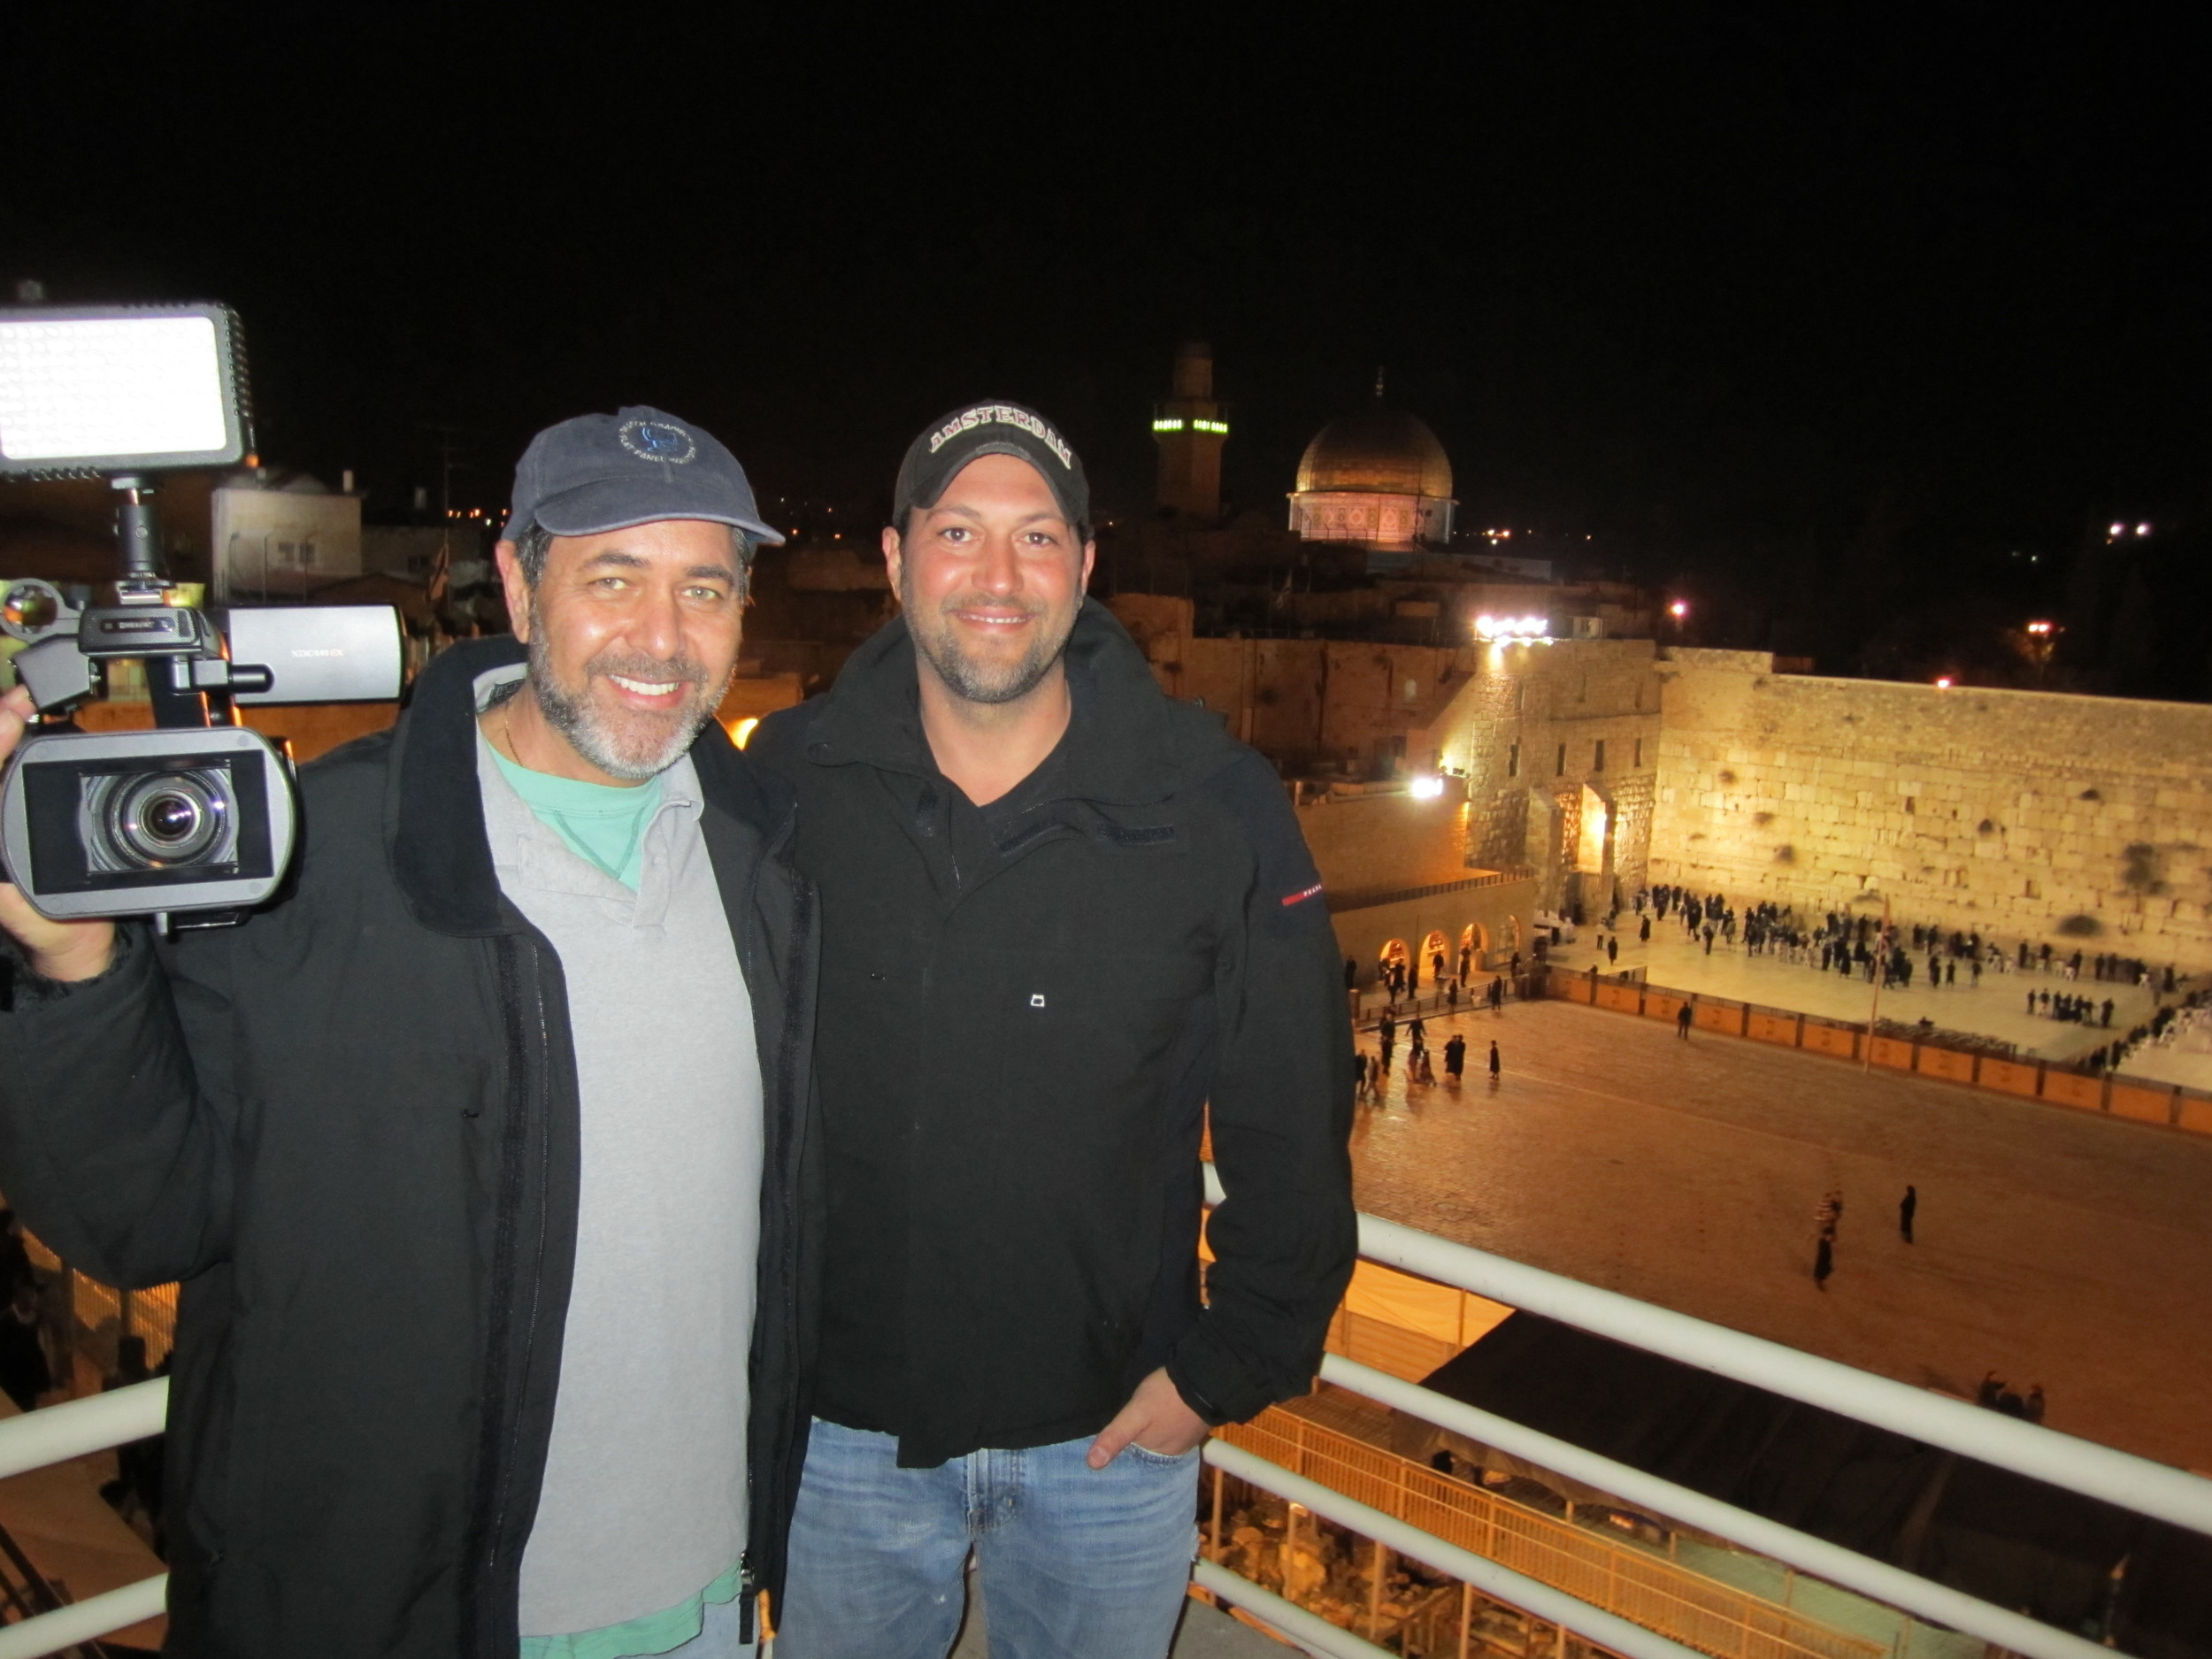 With friend and documentary subject Guma Aguiar, Western Wall Israel